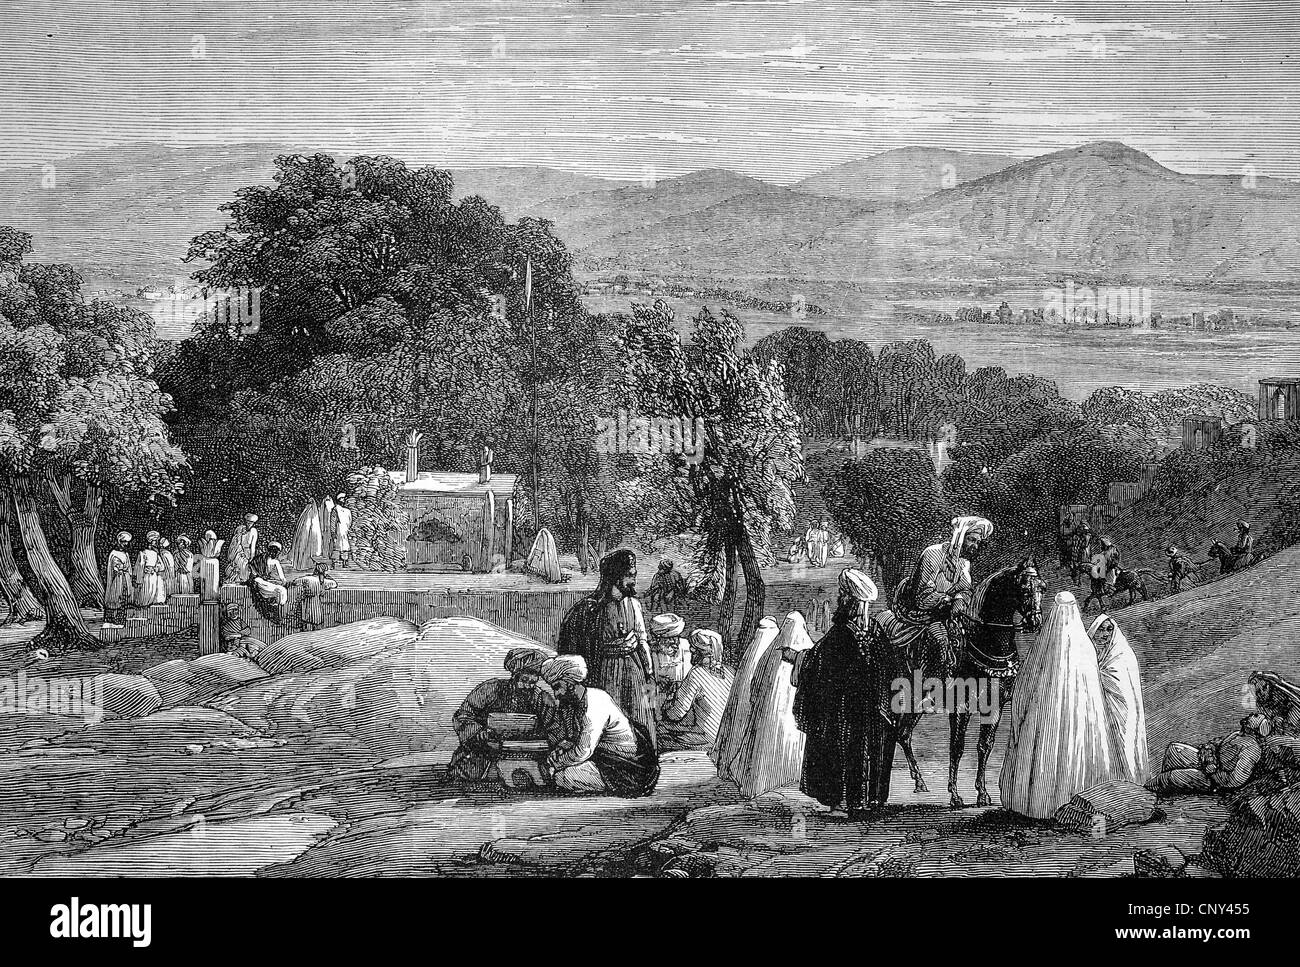 Grave of the Emperor Baber in Kabul, Afghanistan, historical illustration, wood engraving, circa 1888 - Stock Image